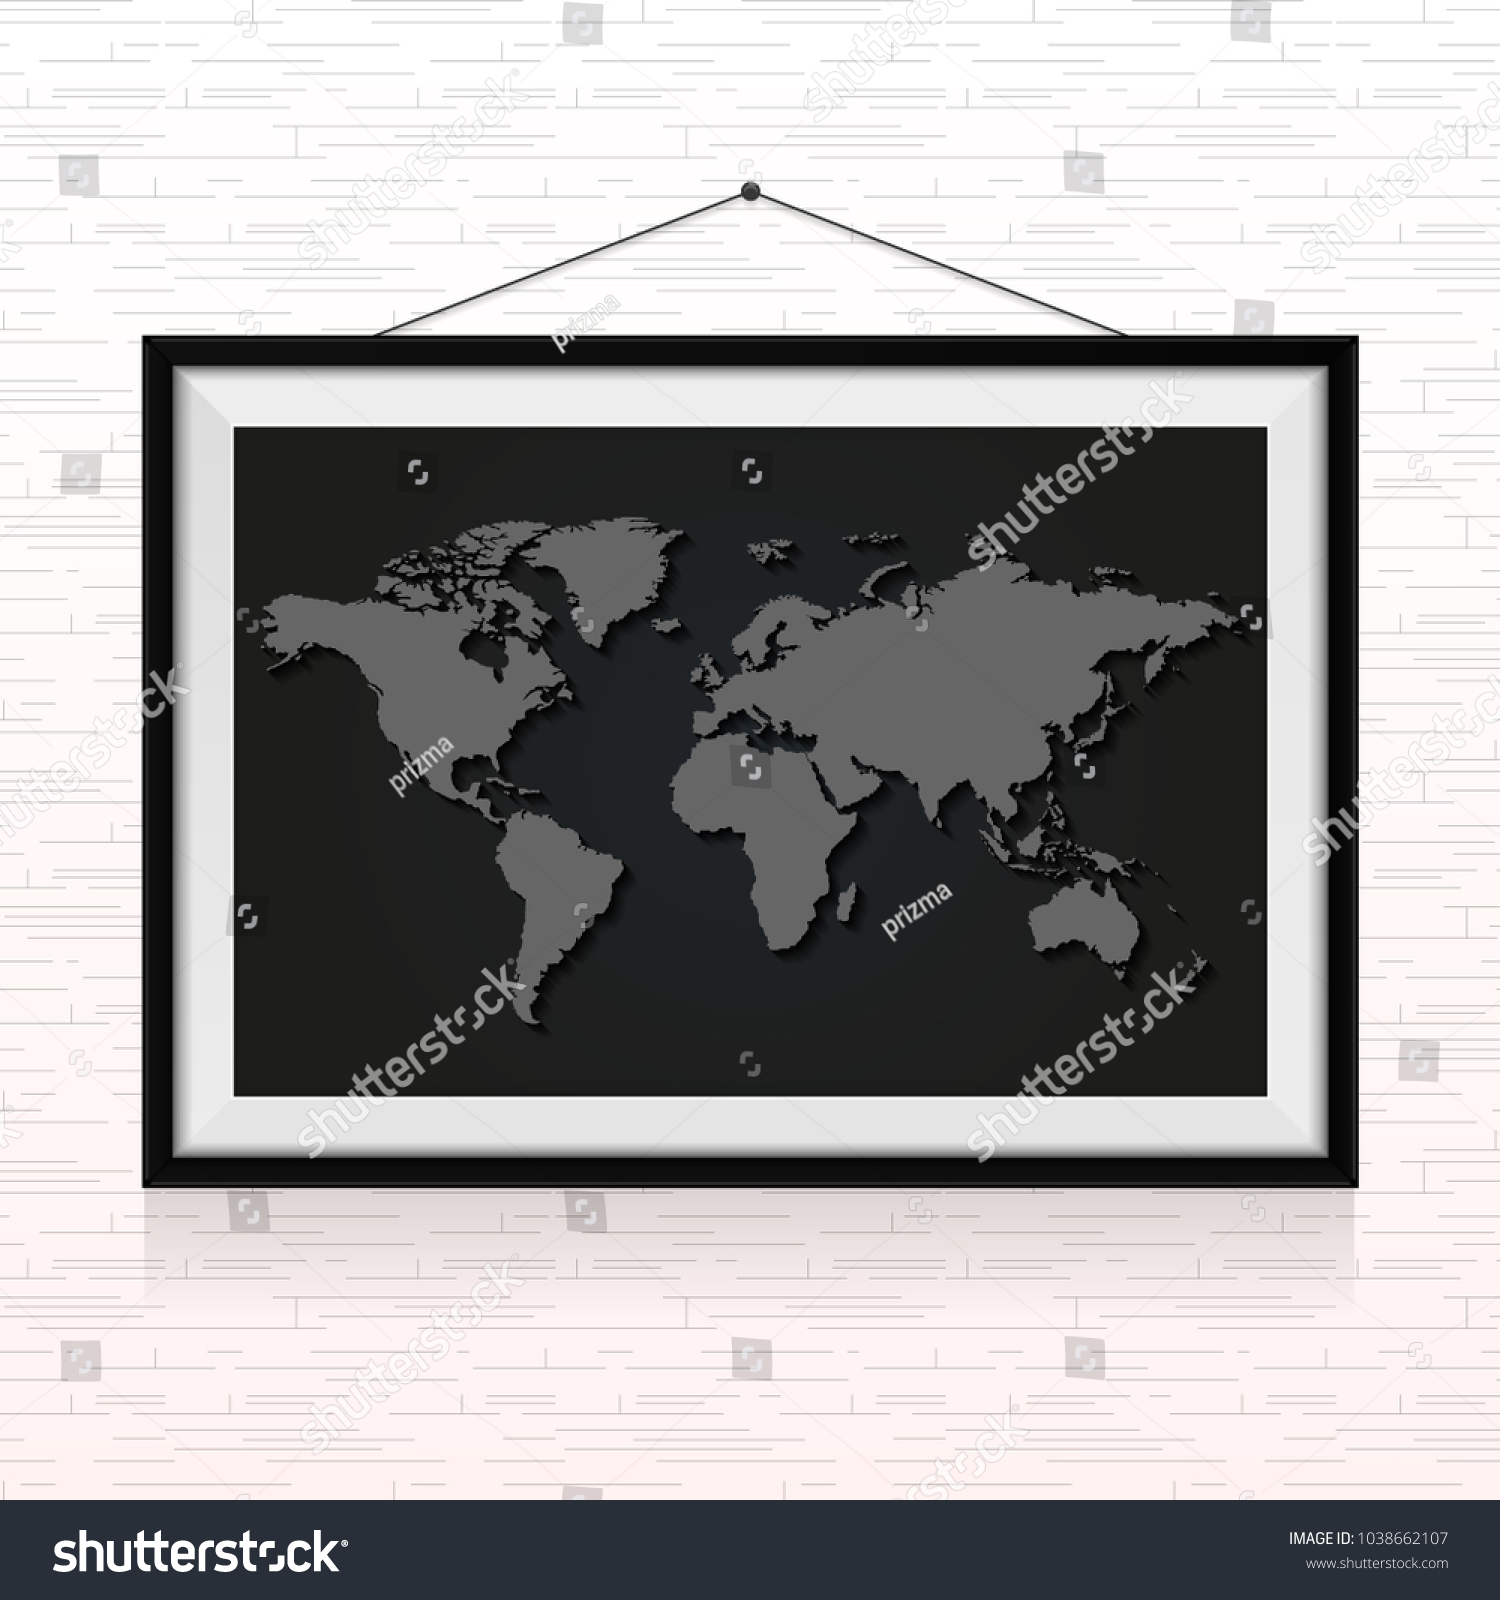 World map photo frame hanged on stock vector 1038662107 shutterstock world map in the photo frame hanged on the wall gumiabroncs Choice Image